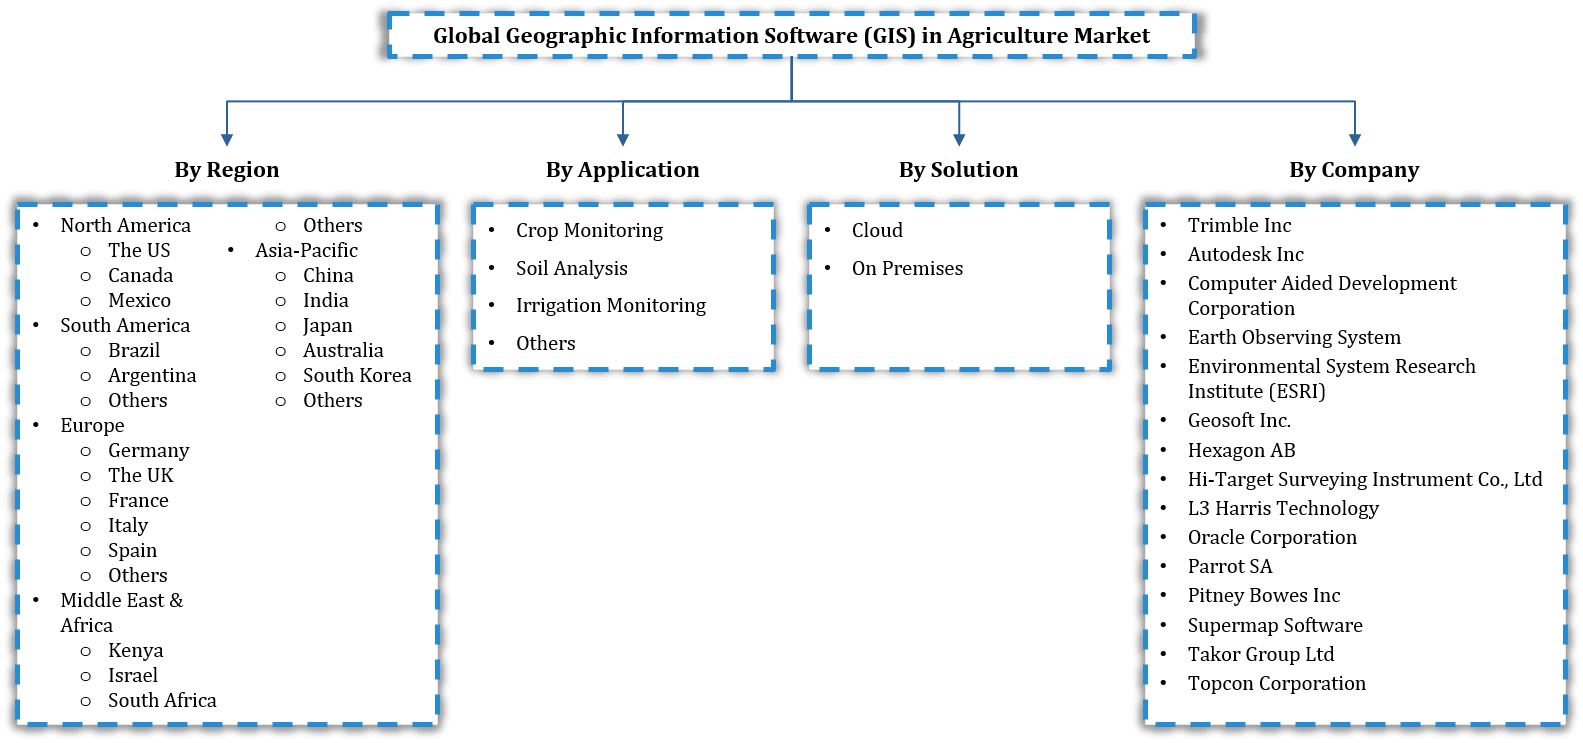 Global Geographic Information Software (GIS) in Agriculture Market Segmentation